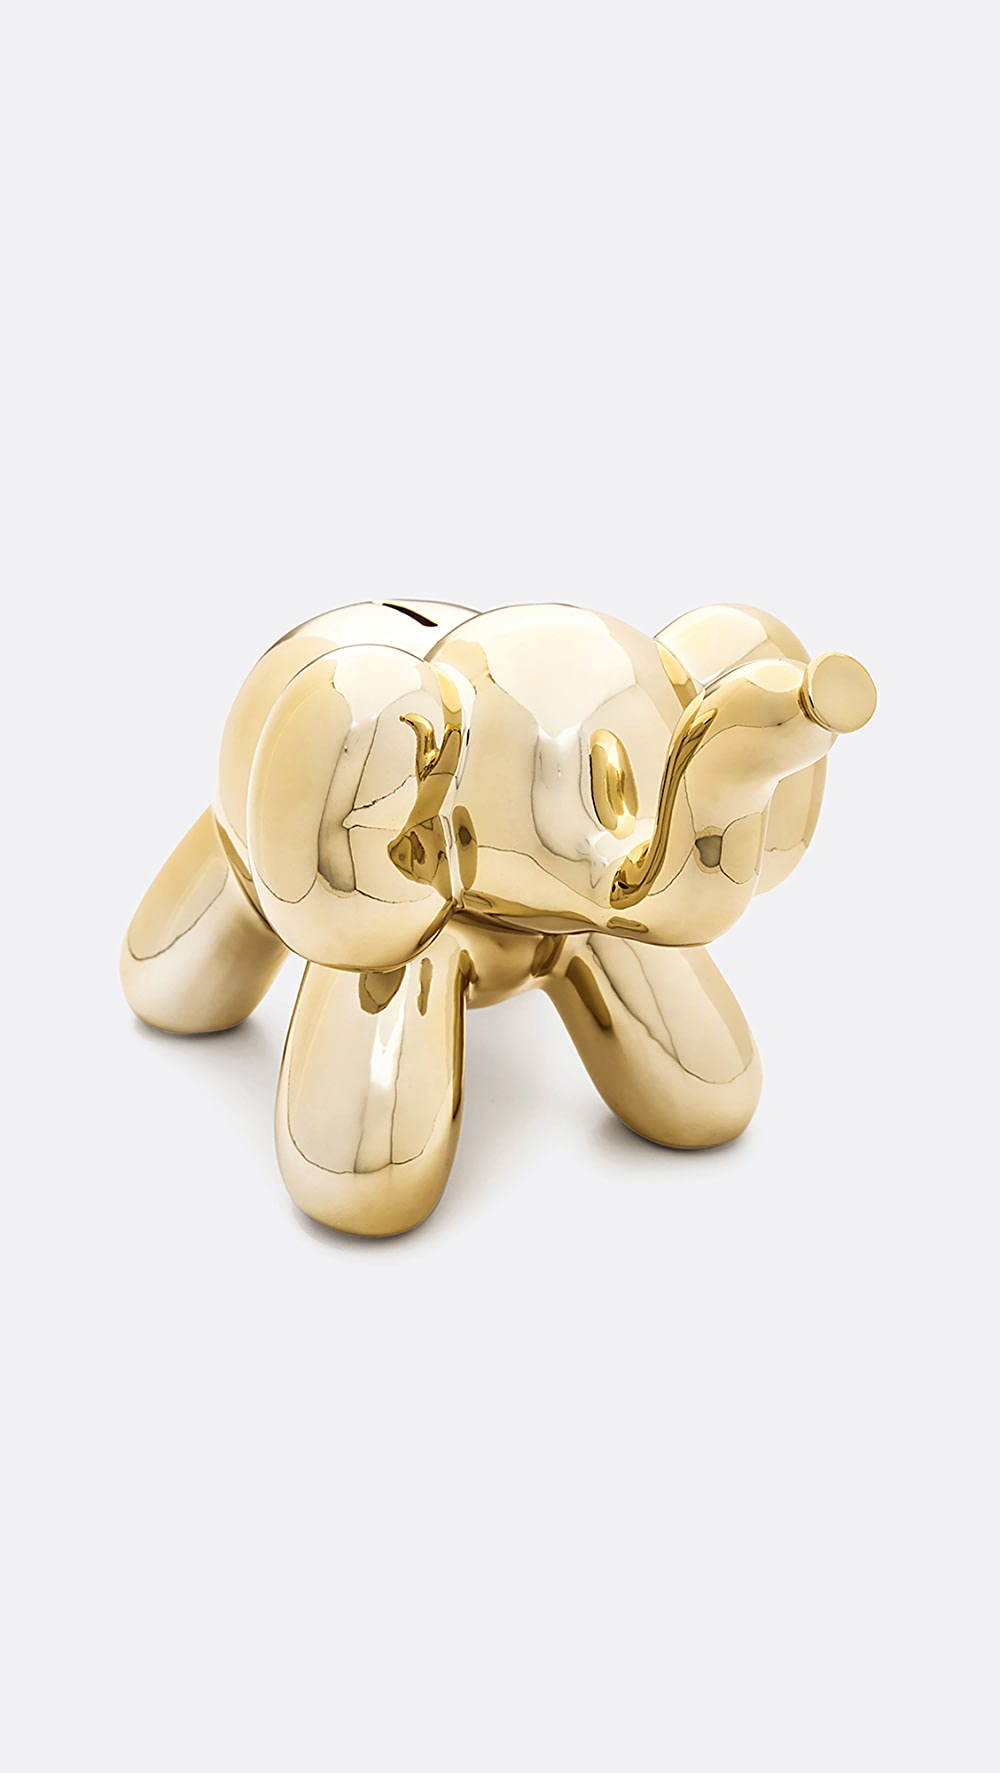 Ambitious Shopbop @home - Balloon Money Bank Elephant With The Most Up-To-Date Equipment And Techniques